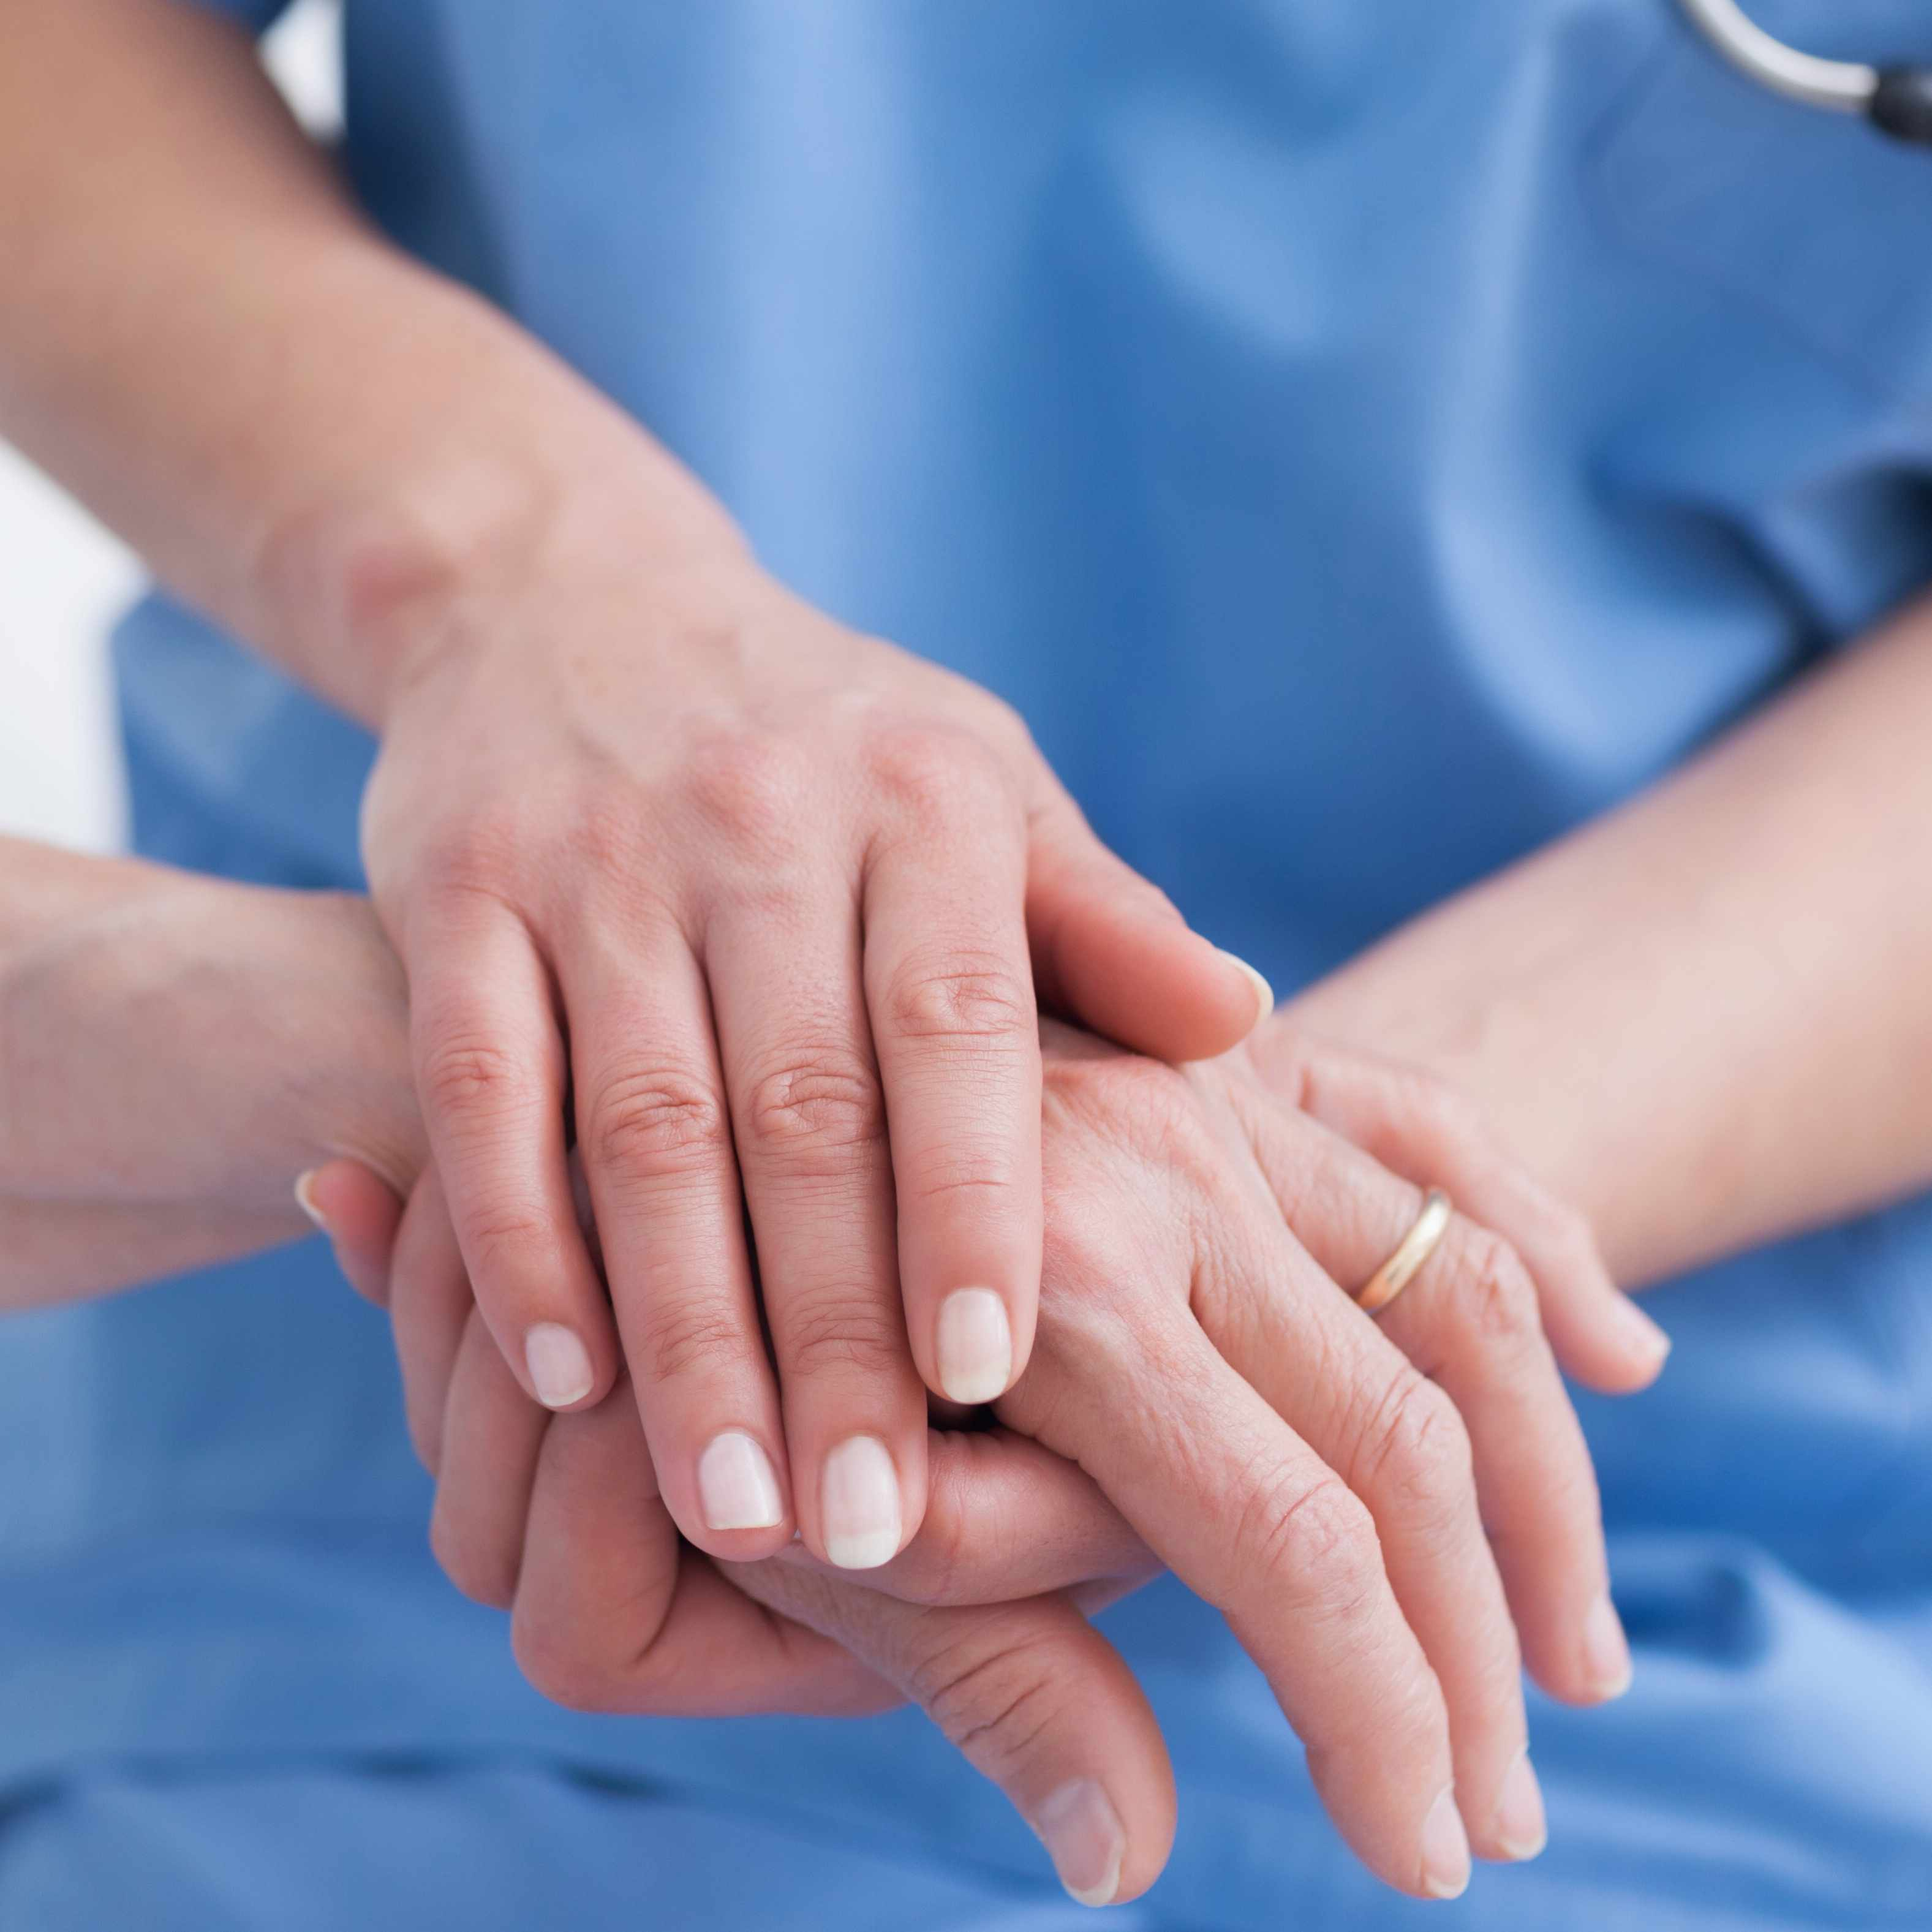 a medical staff person, nurse, holding a patient's hand